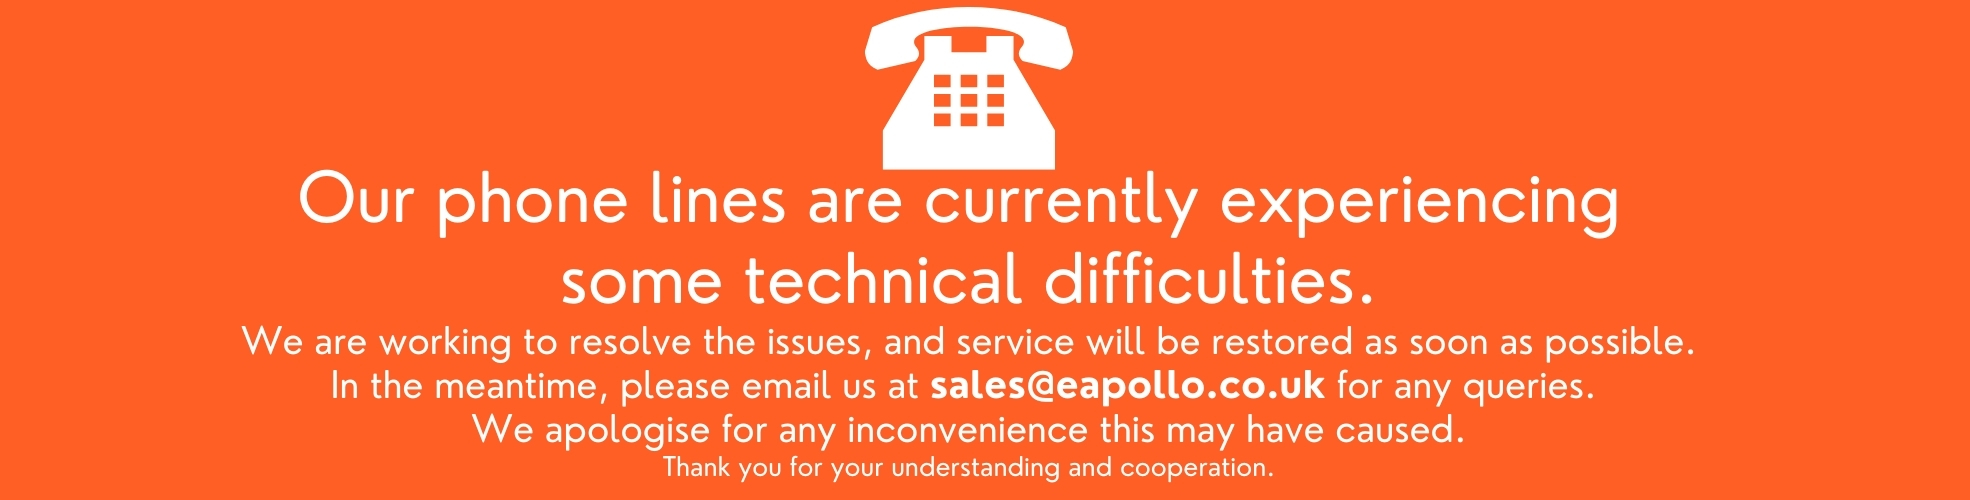 Our phone lines are currently experiencing some technical difficulties. We are working to resolve the issues, and service will be restored as soon as possible. In the meantime, please email us at sales@eapollo.co.uk for any queries. We apologise for any inconvenience this may have caused. Thank you for your understanding and cooperation.